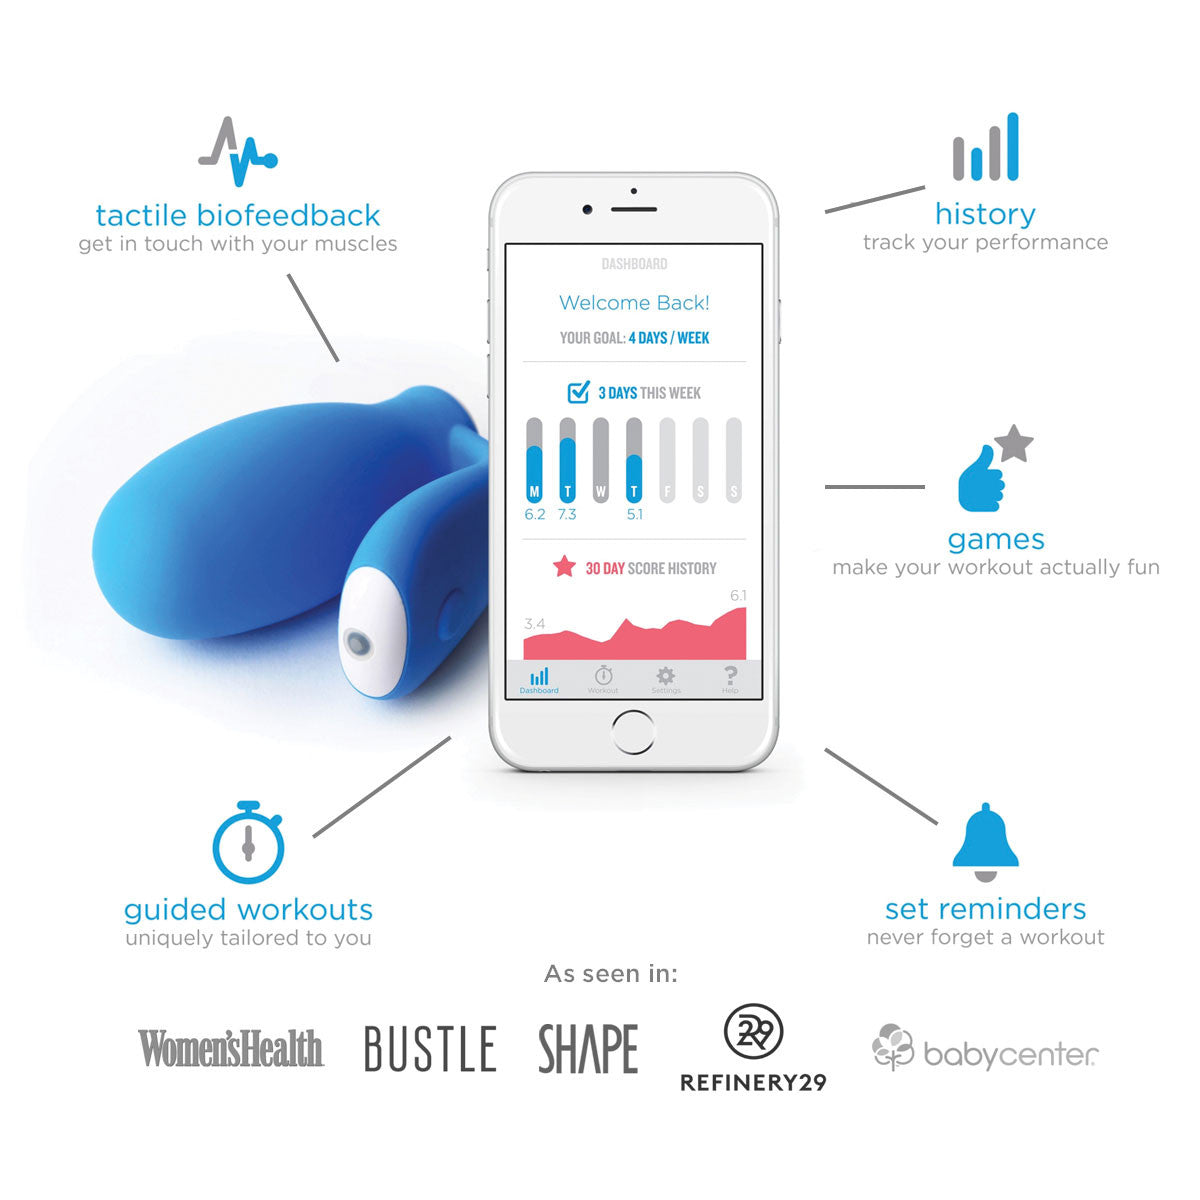 How to use kGoal Smart Kegel Trainer by Minna - Sky Blue